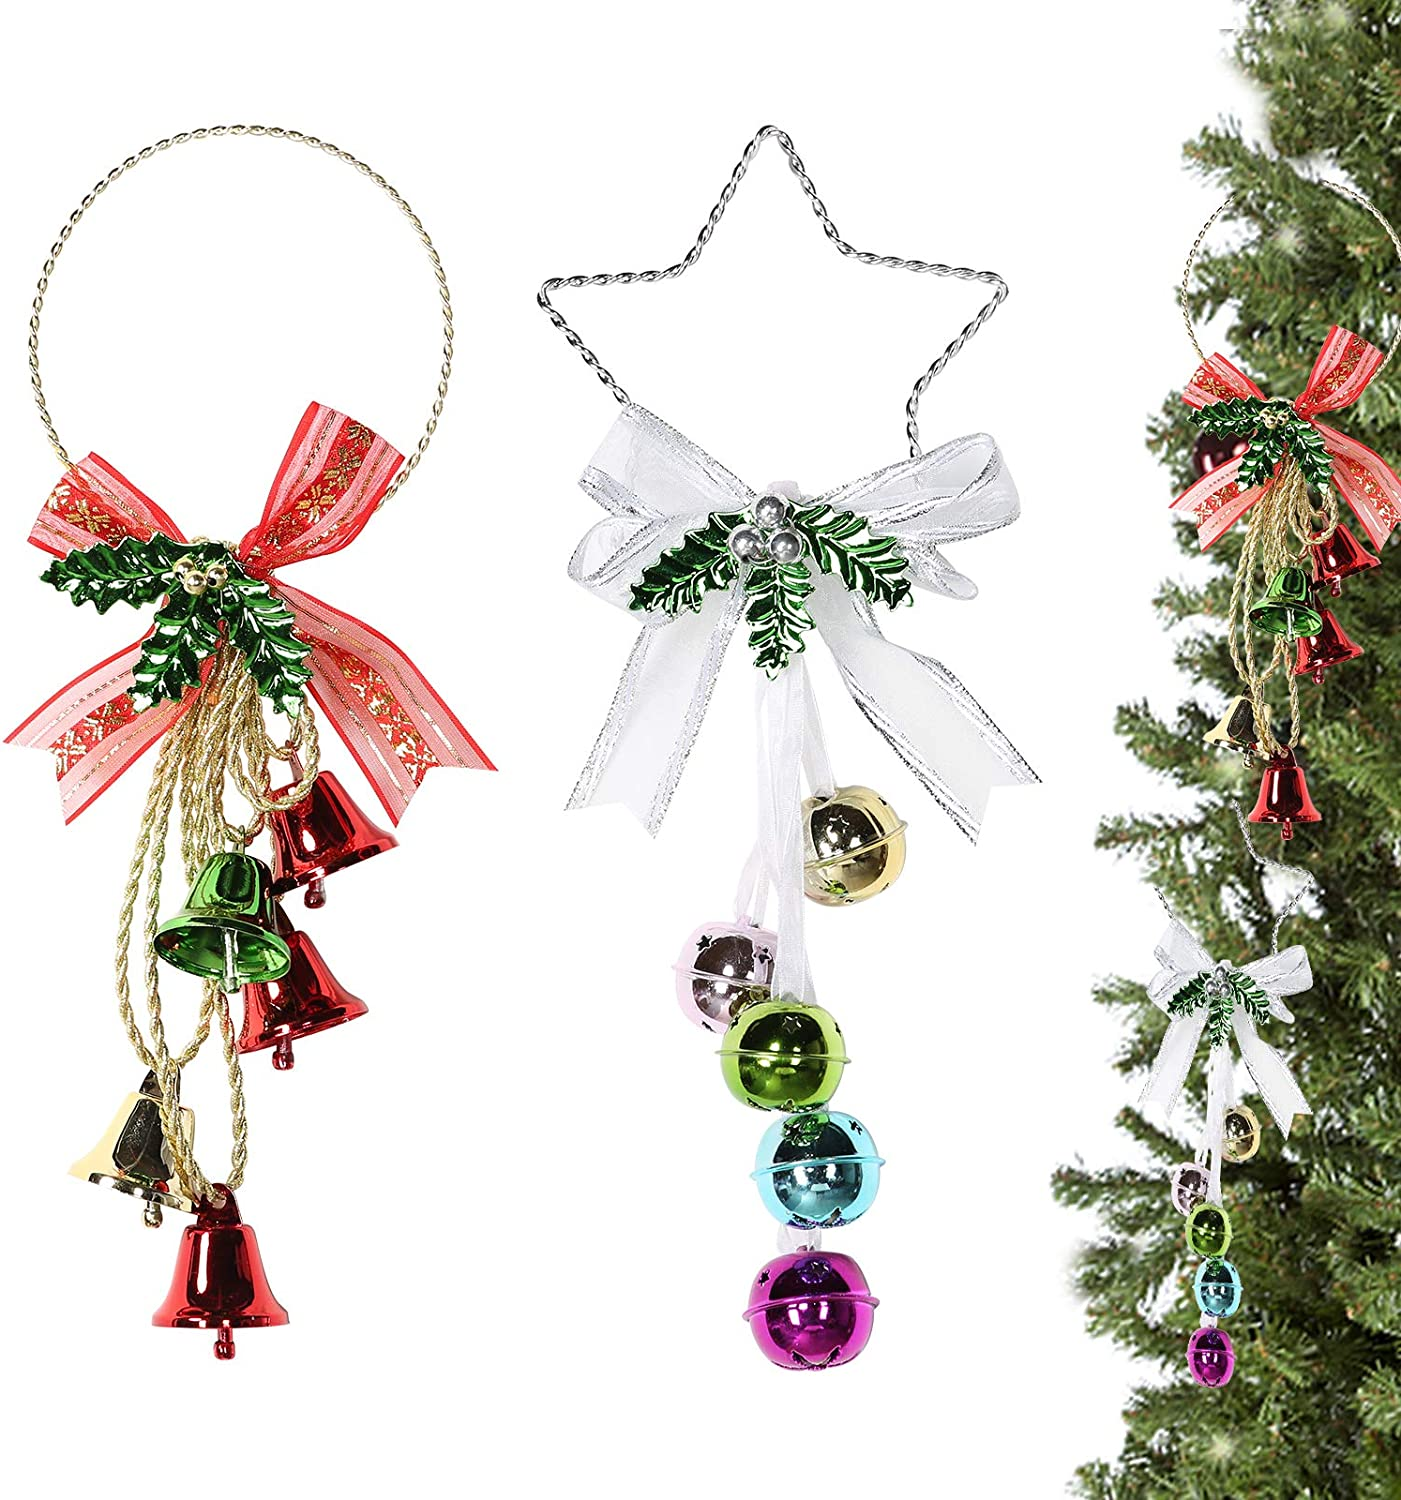 VECELO 2 Pack Christmas Ornaments for Family Home Decoration Christmas Jingle Bell Hanging Pendant Decorations for Christmas & Parties (Red(Round)+Star(Silver))